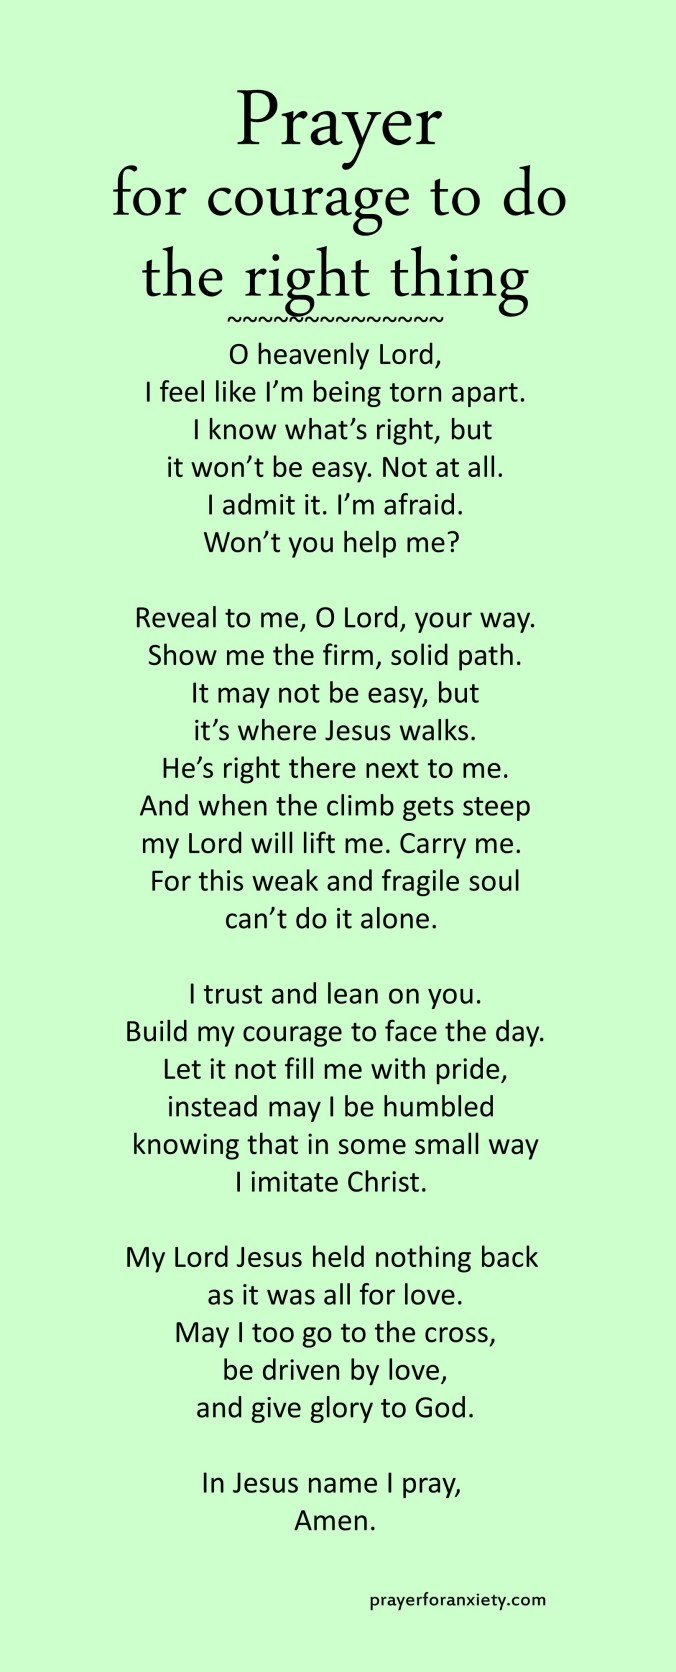 Prayer for courage to do the right thing